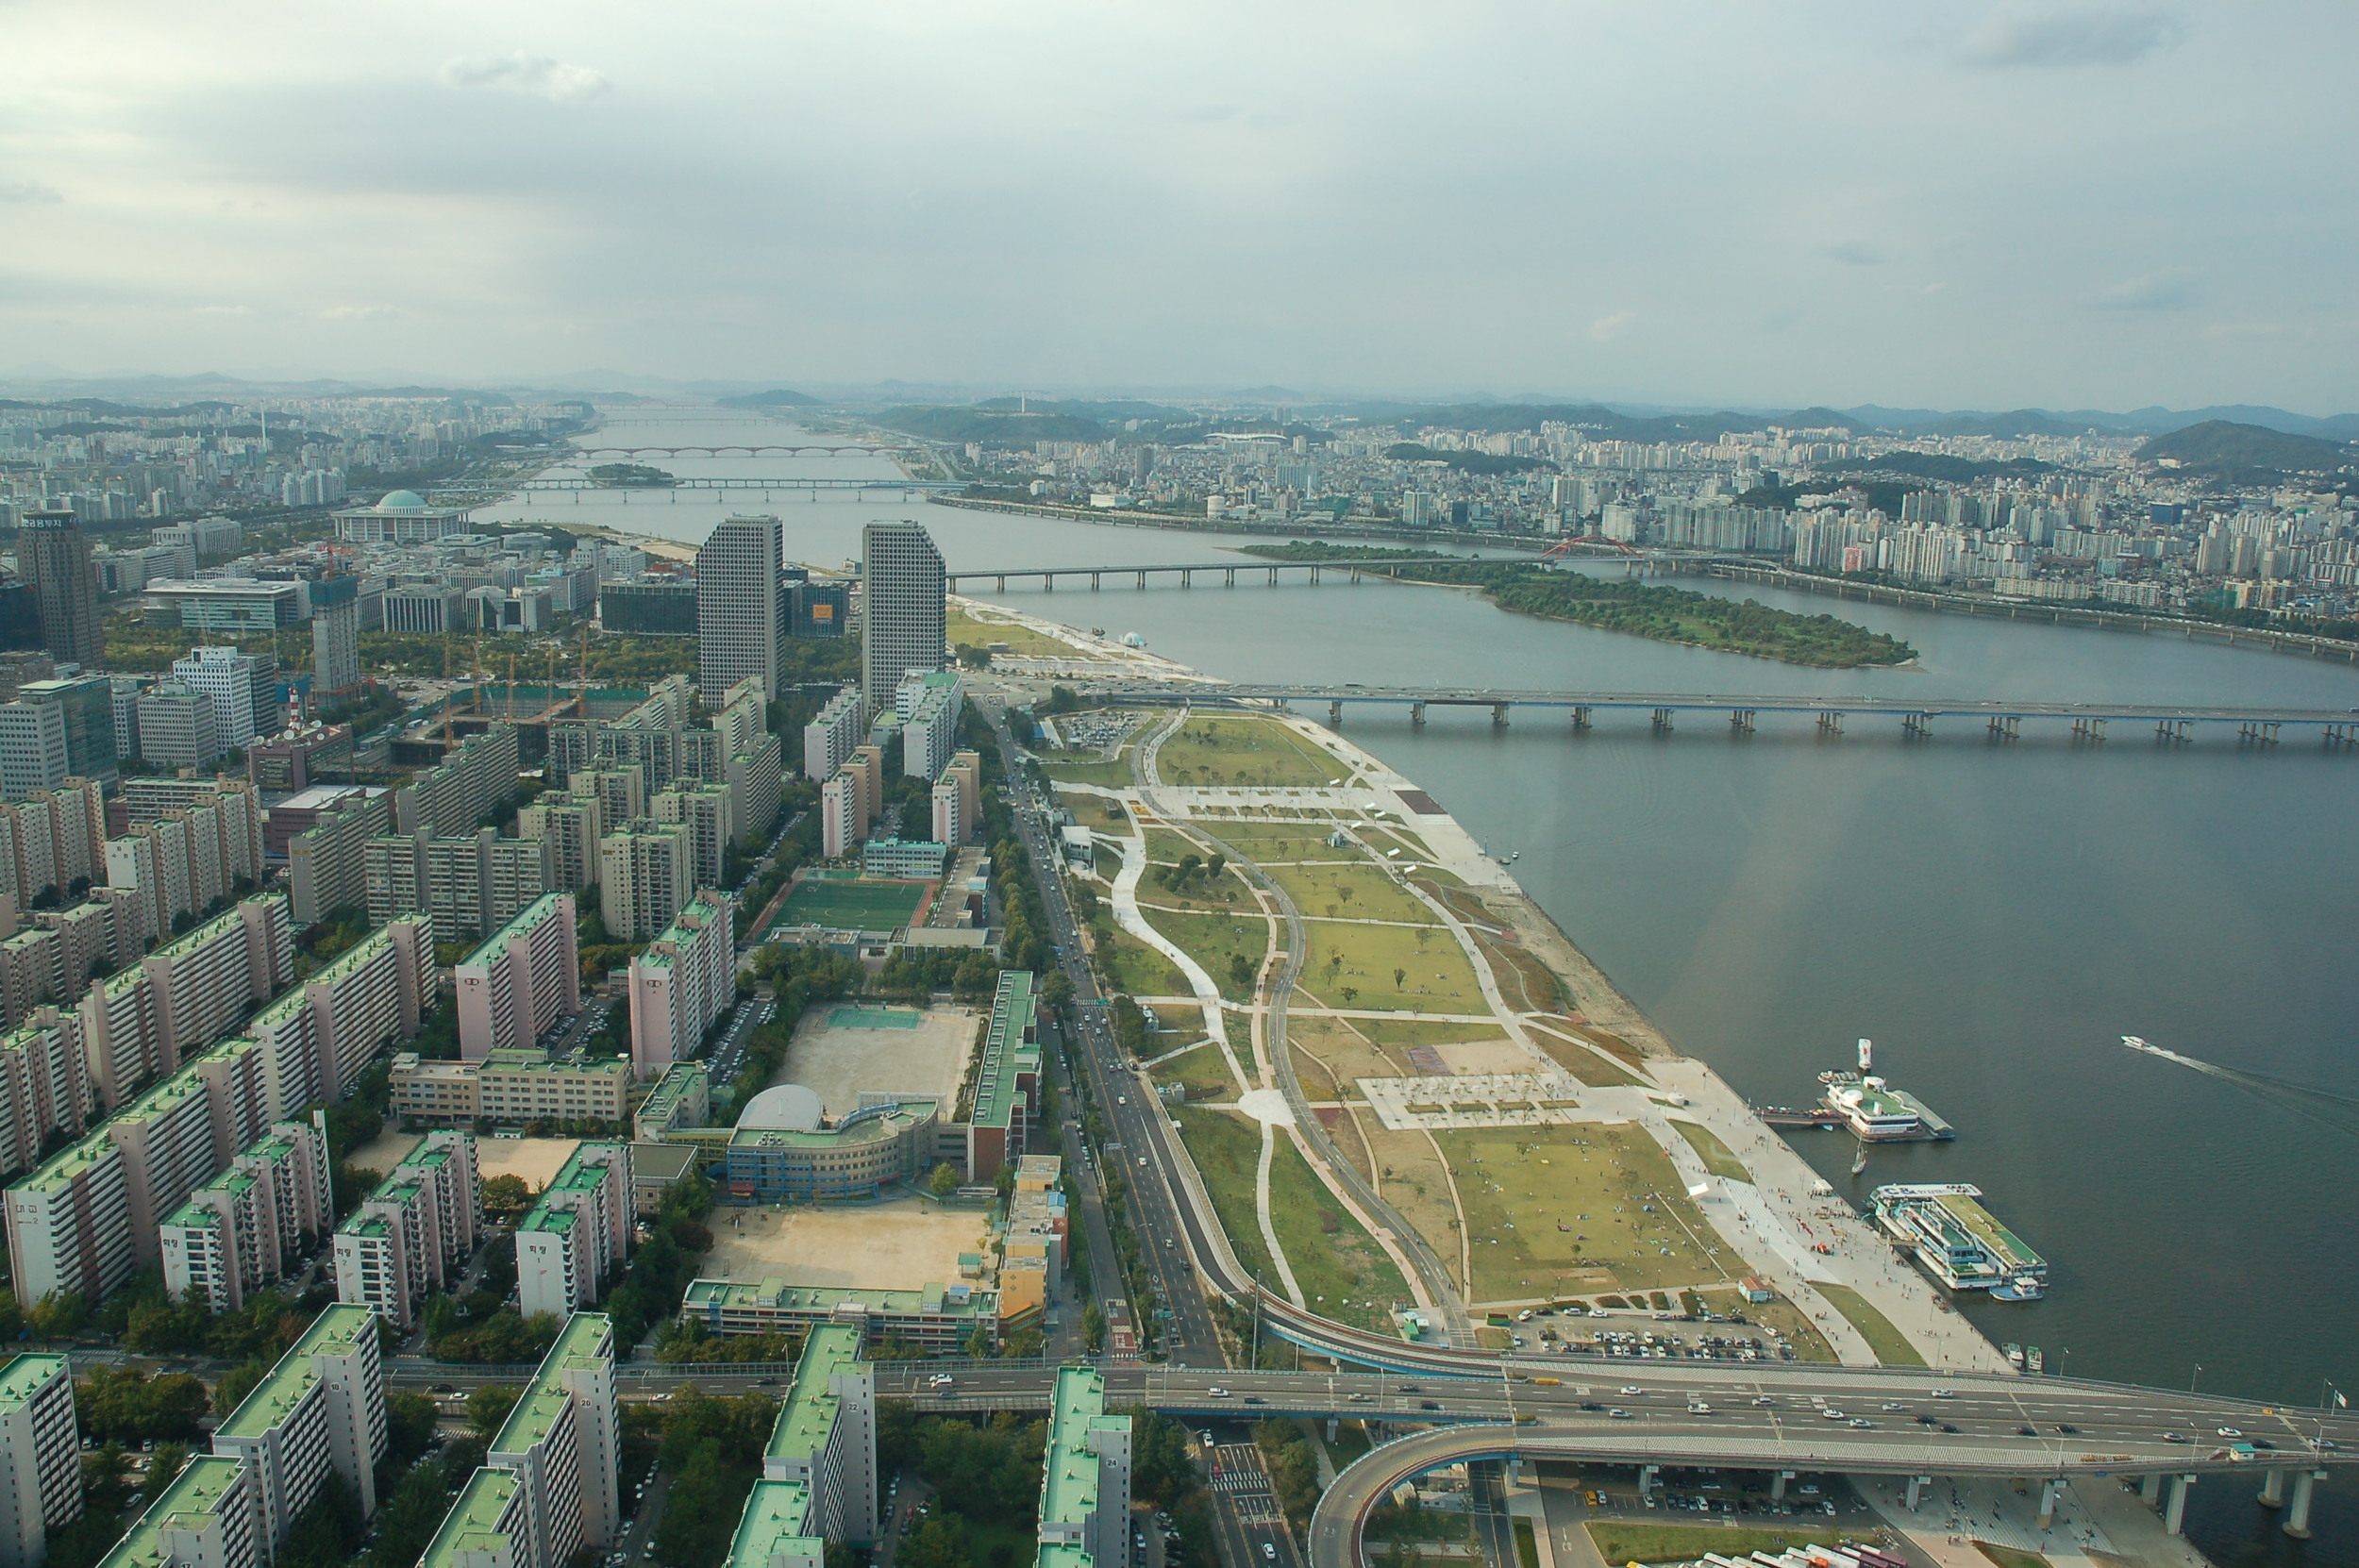 Han River Park from 60 stories